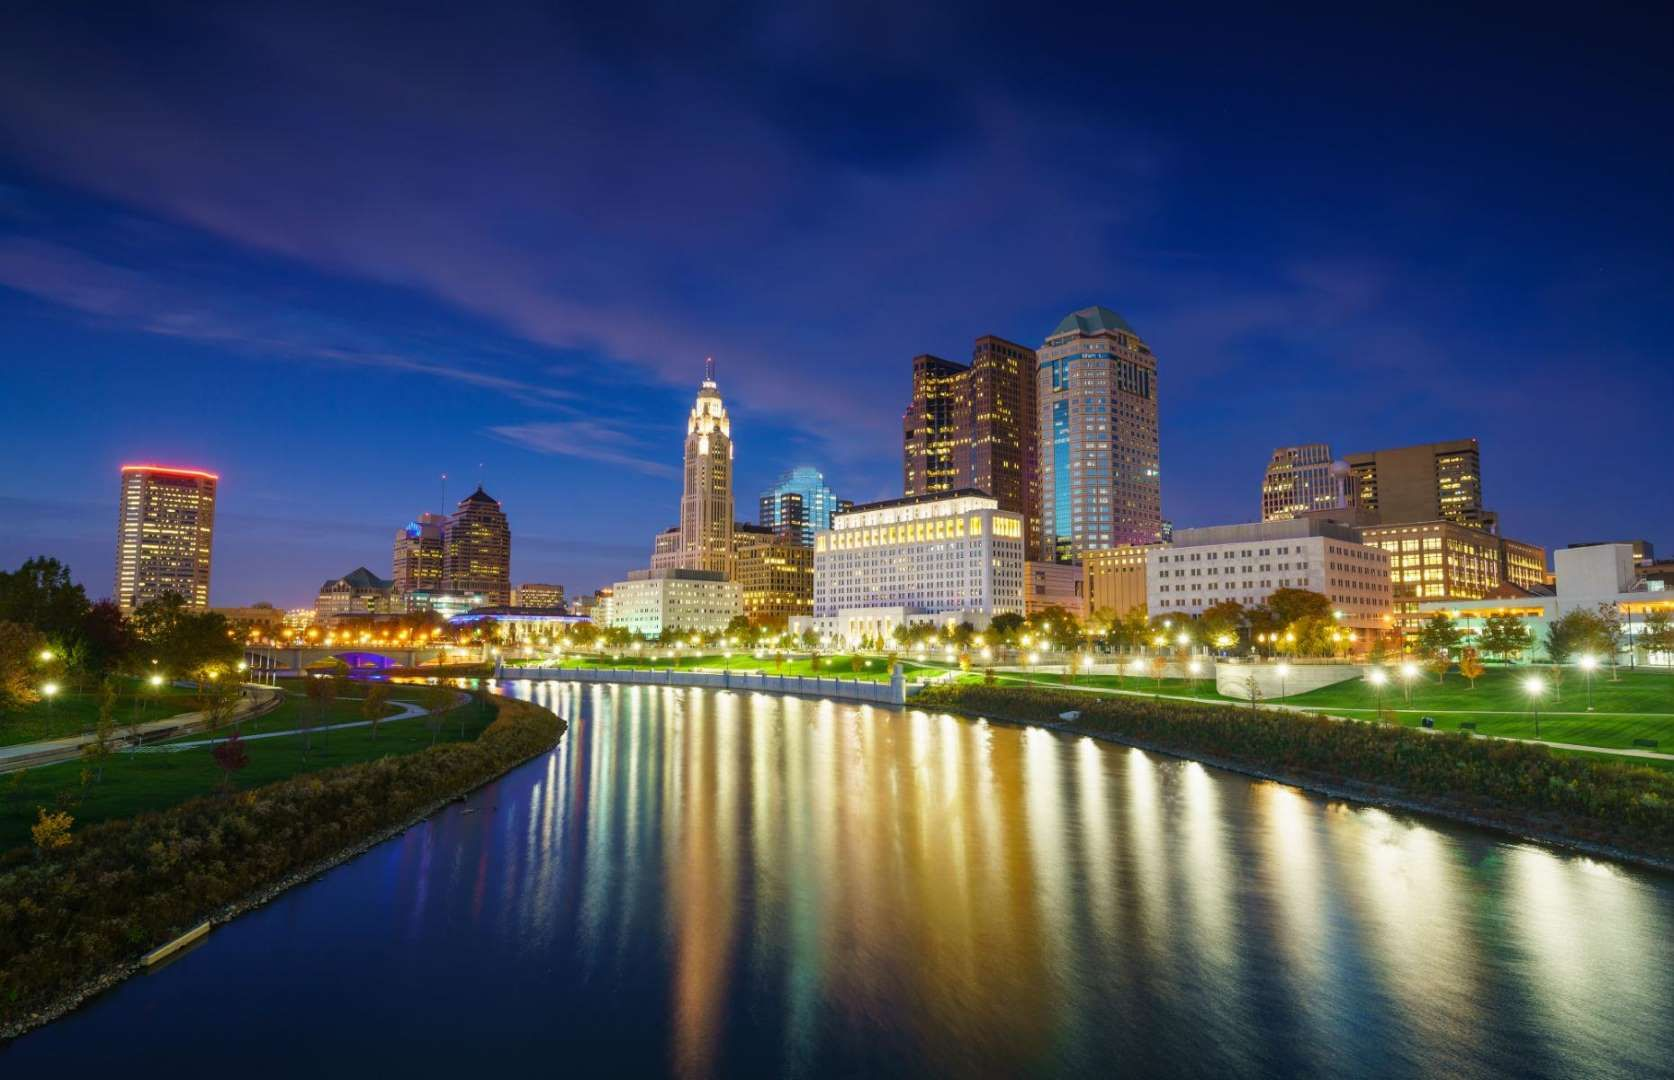 As the capital of Ohio, Columbus is certainly an exciting